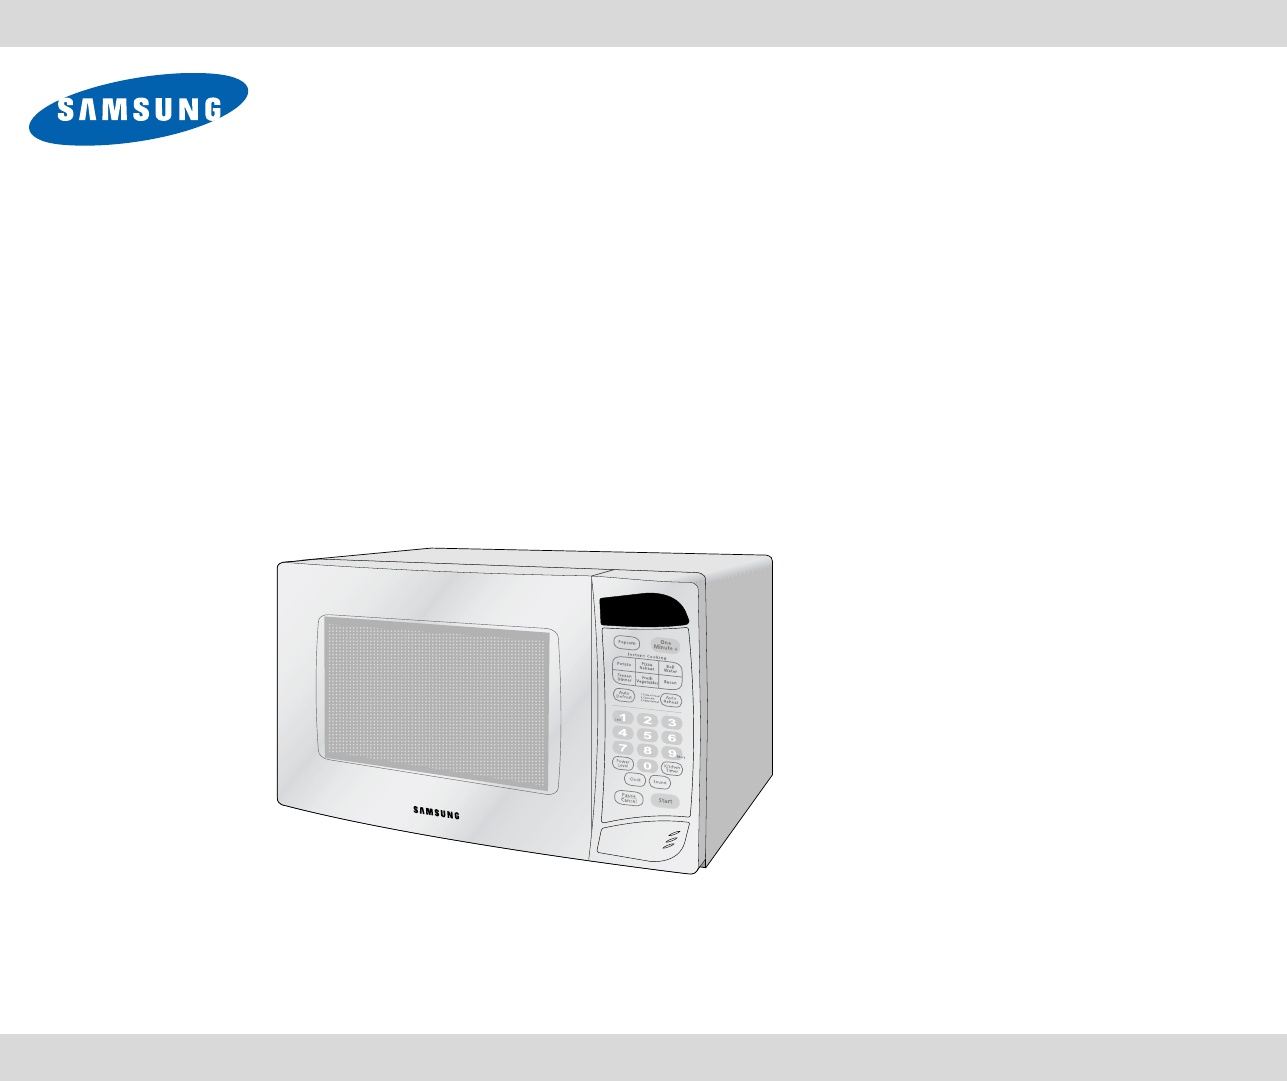 samsung microwave oven mw965wb user guide manualsonline com rh tv manualsonline com samsung microwave guide samsung microwave guide cover